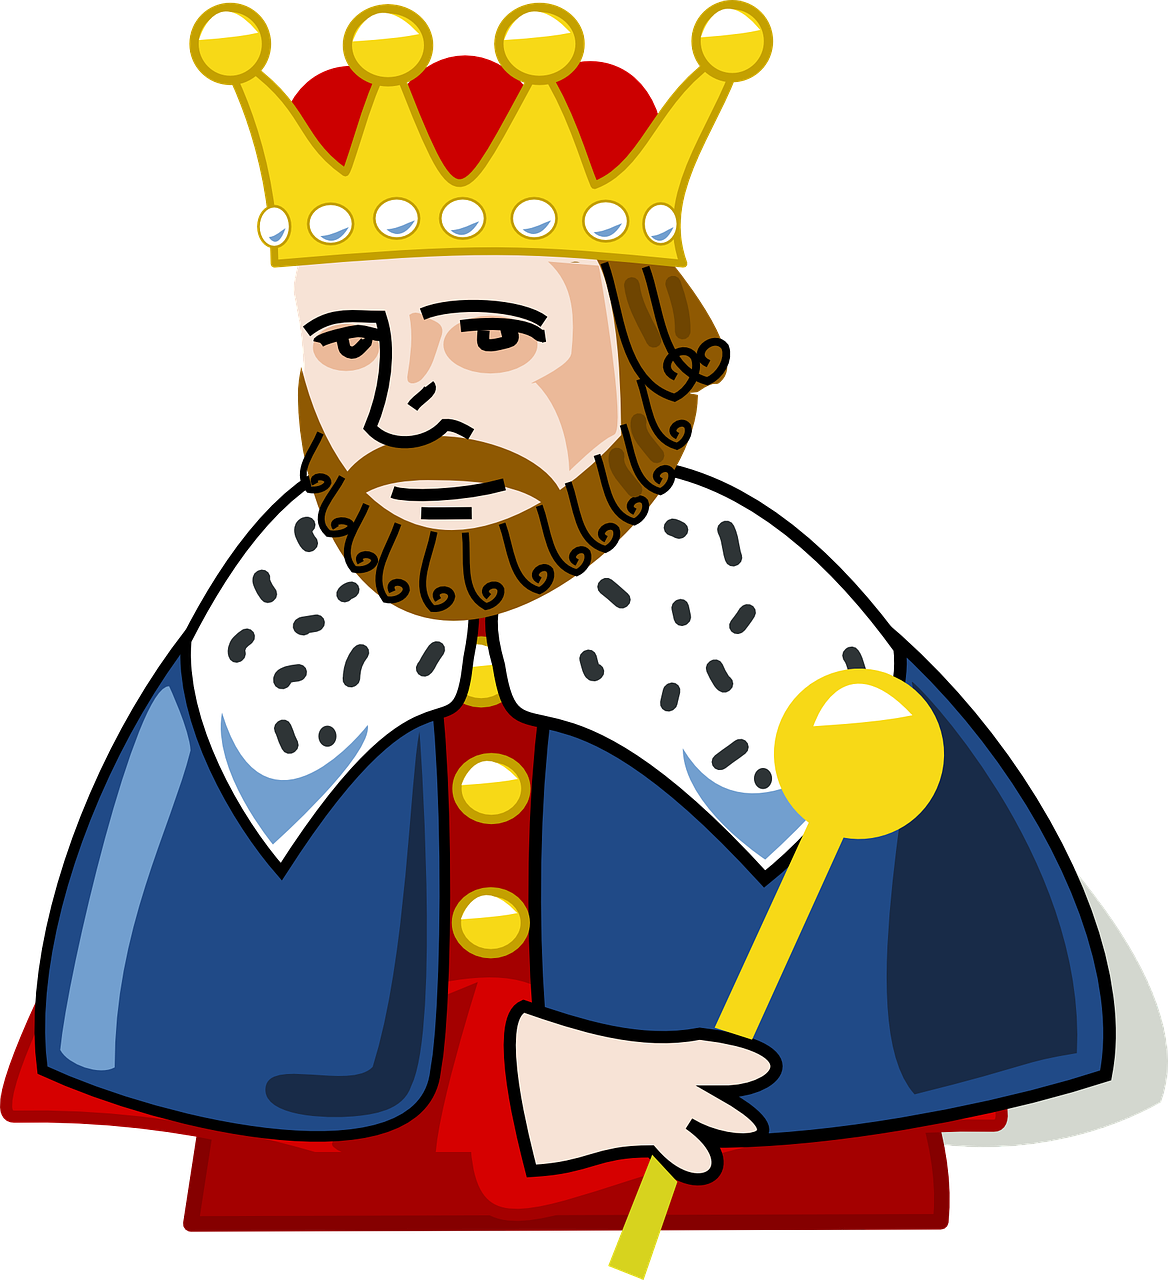 Crown and scepter clipart black anh withe royalty free stock King Crown Beard Insignia Power PNG Image - Picpng royalty free stock